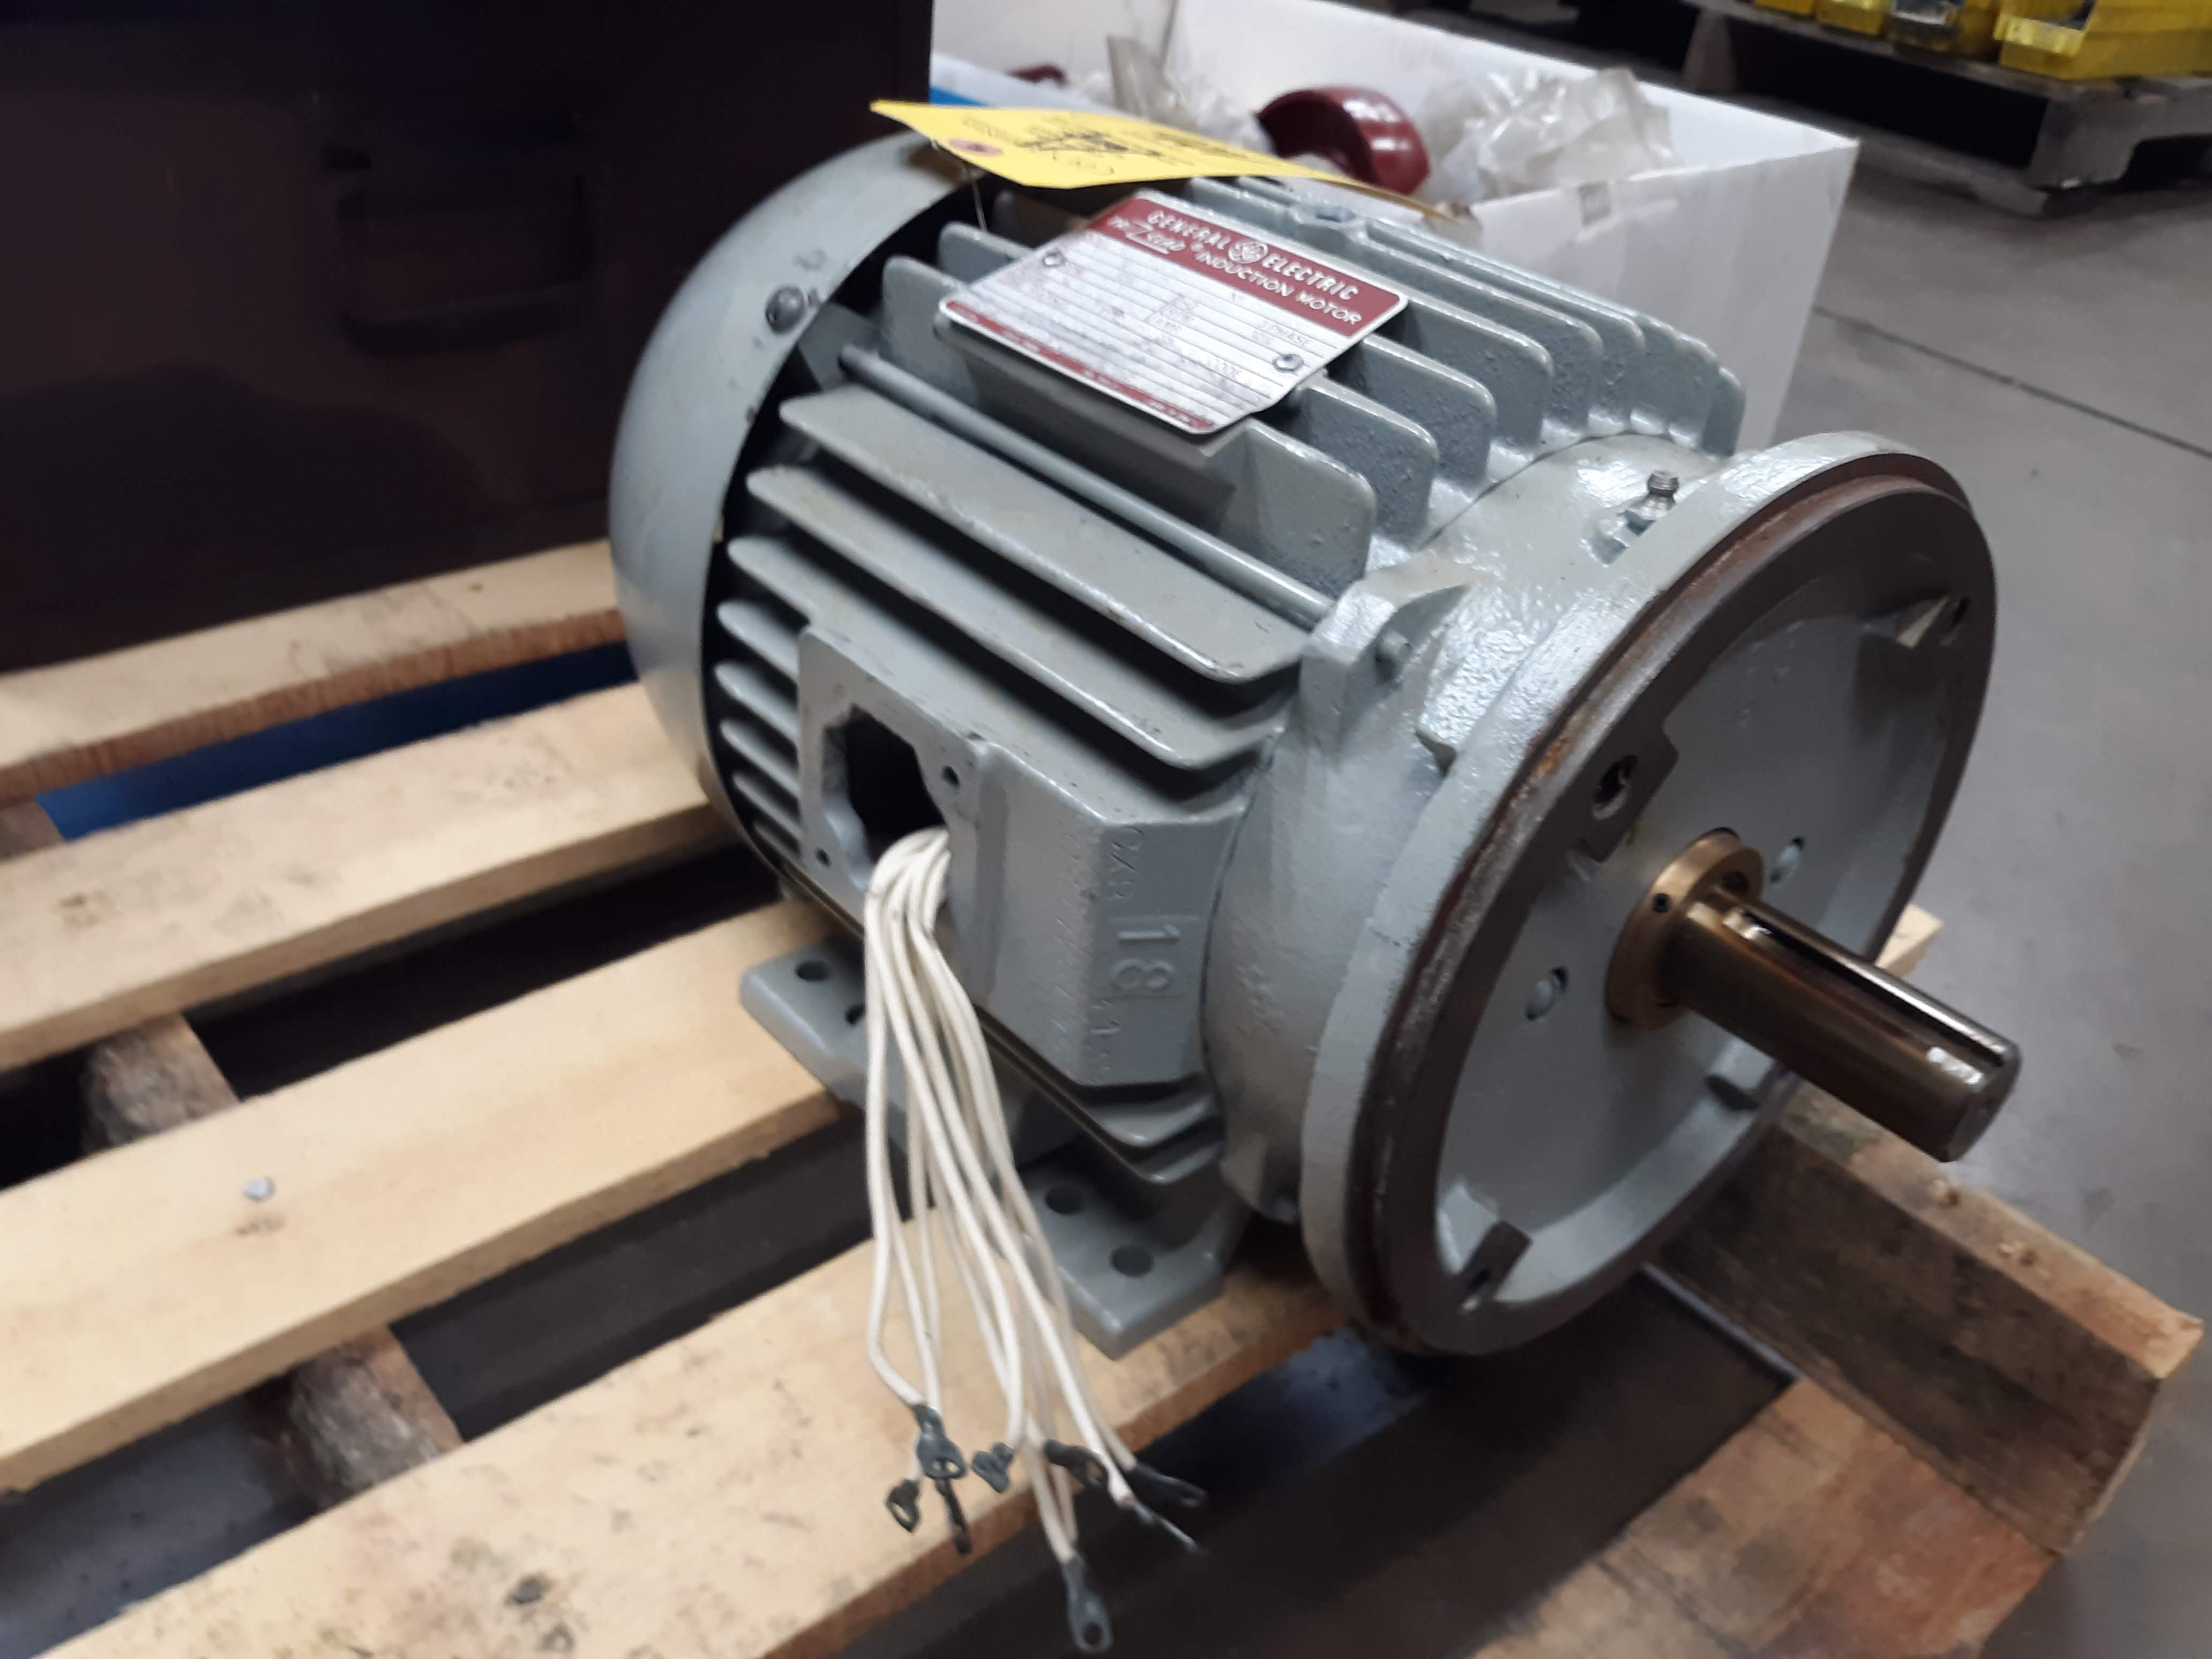 GE TRI CLAD AC MOTOR 5HP (LOCATED AT: 432 COUNCIL DRIVE, FORT WAYNE, IN 46825) - Image 2 of 2